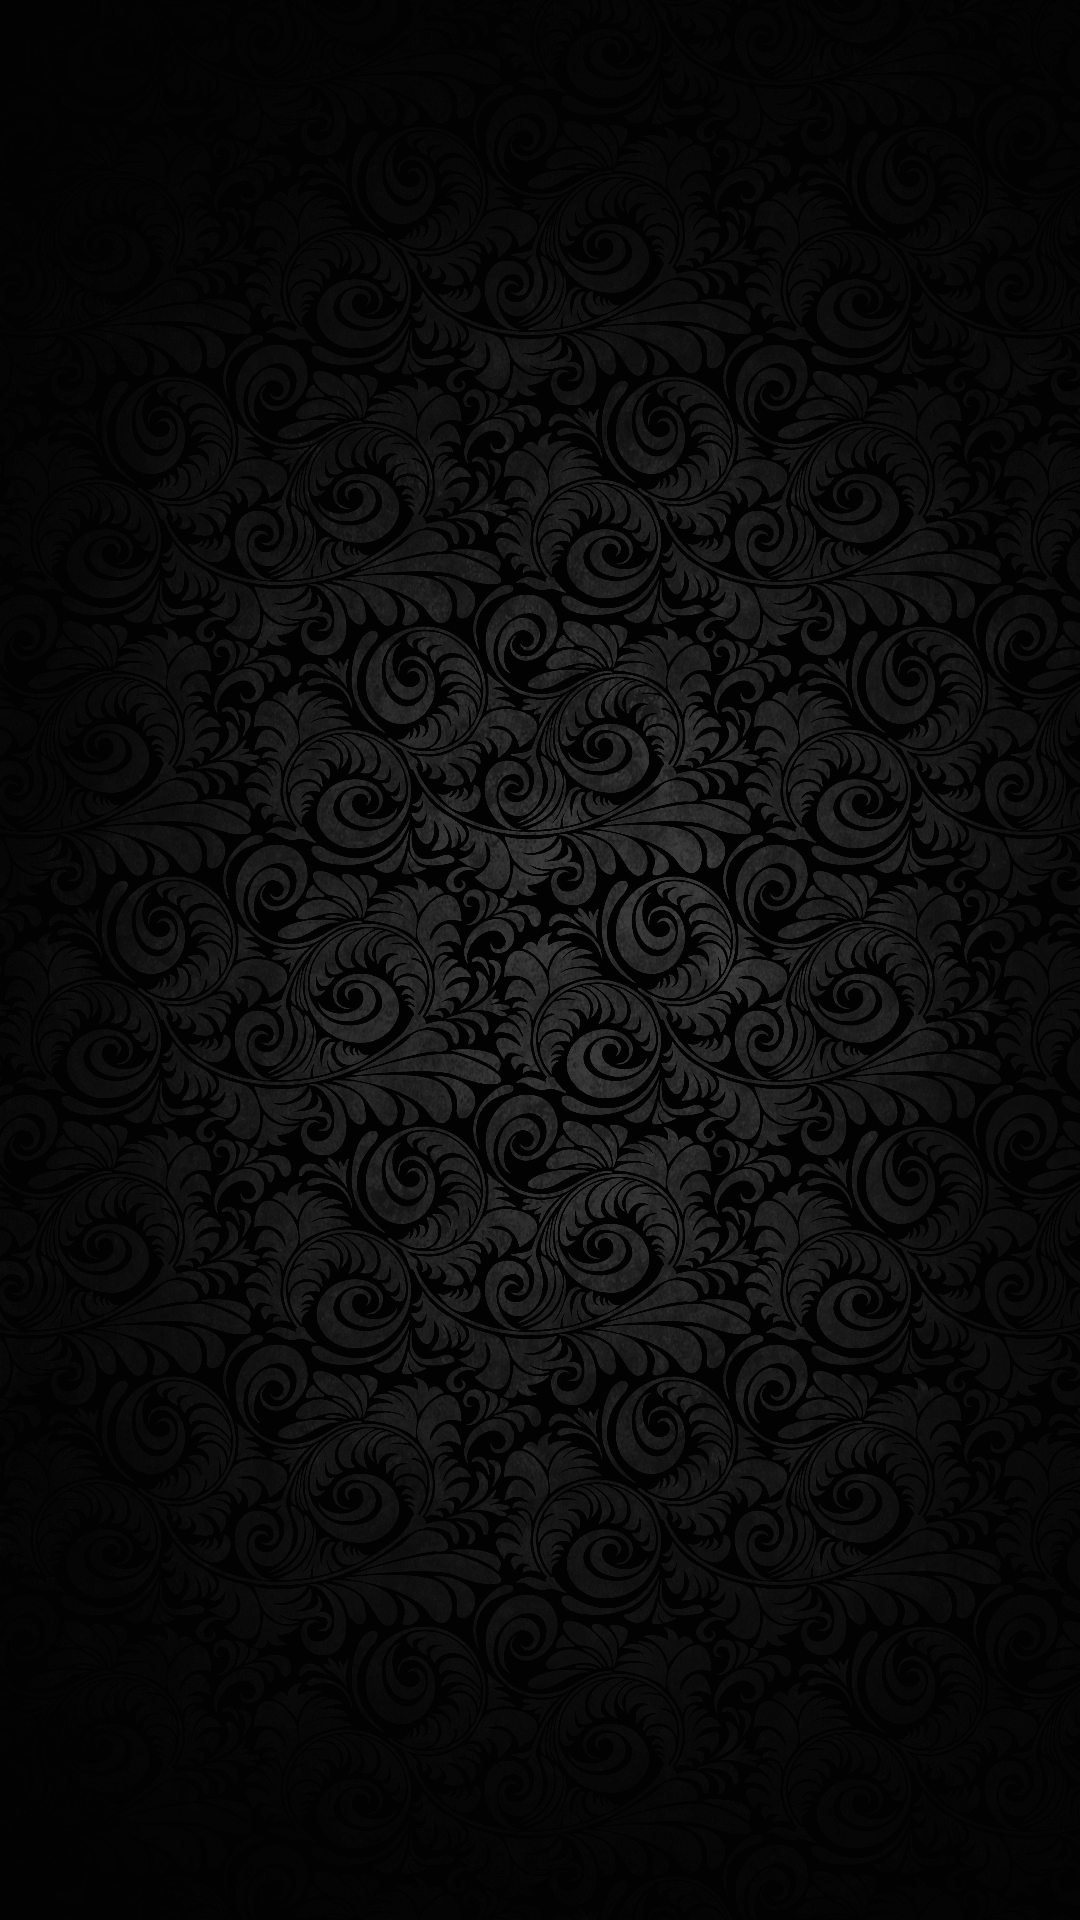 comwallpaper full hd 1080 x 1920 smartphone dark elegantphp 1080x1920